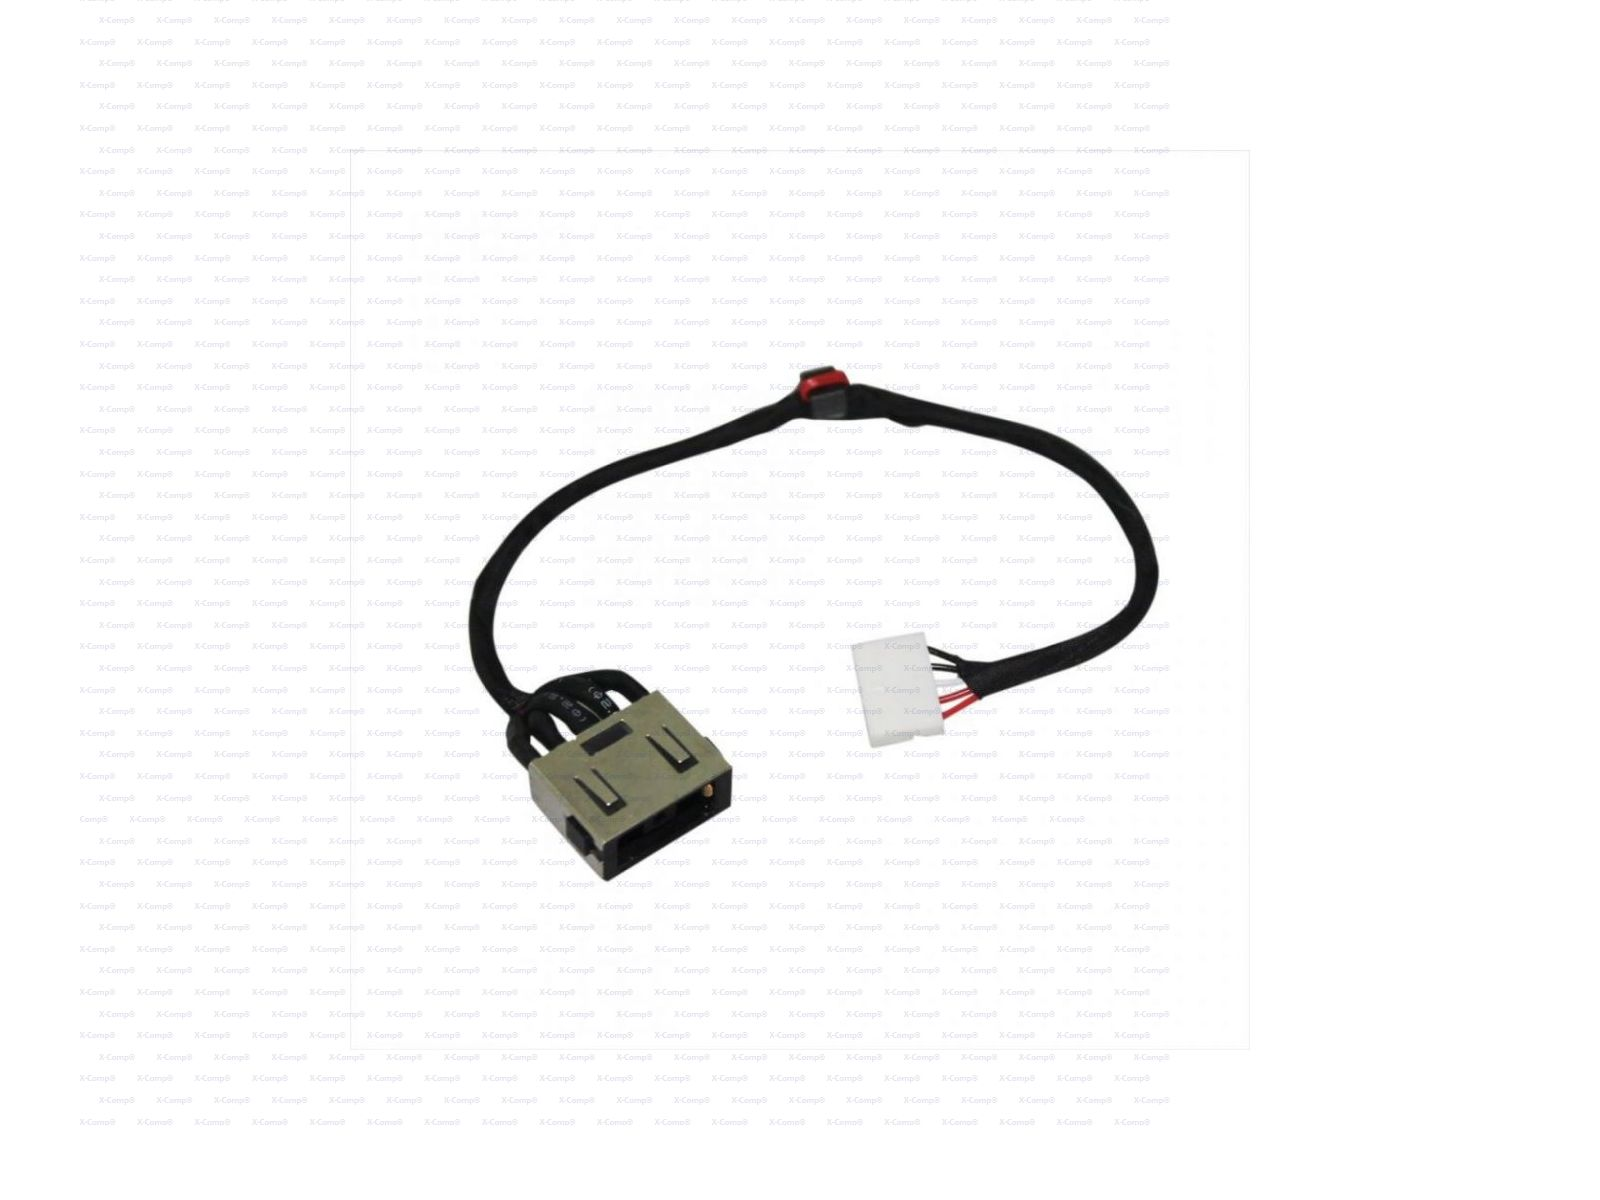 Computer & Office New Laptop Dc Power Jack With Cable For Lenovo E40-70 B40-80 N40-70 E40-80 Dc30100r100t